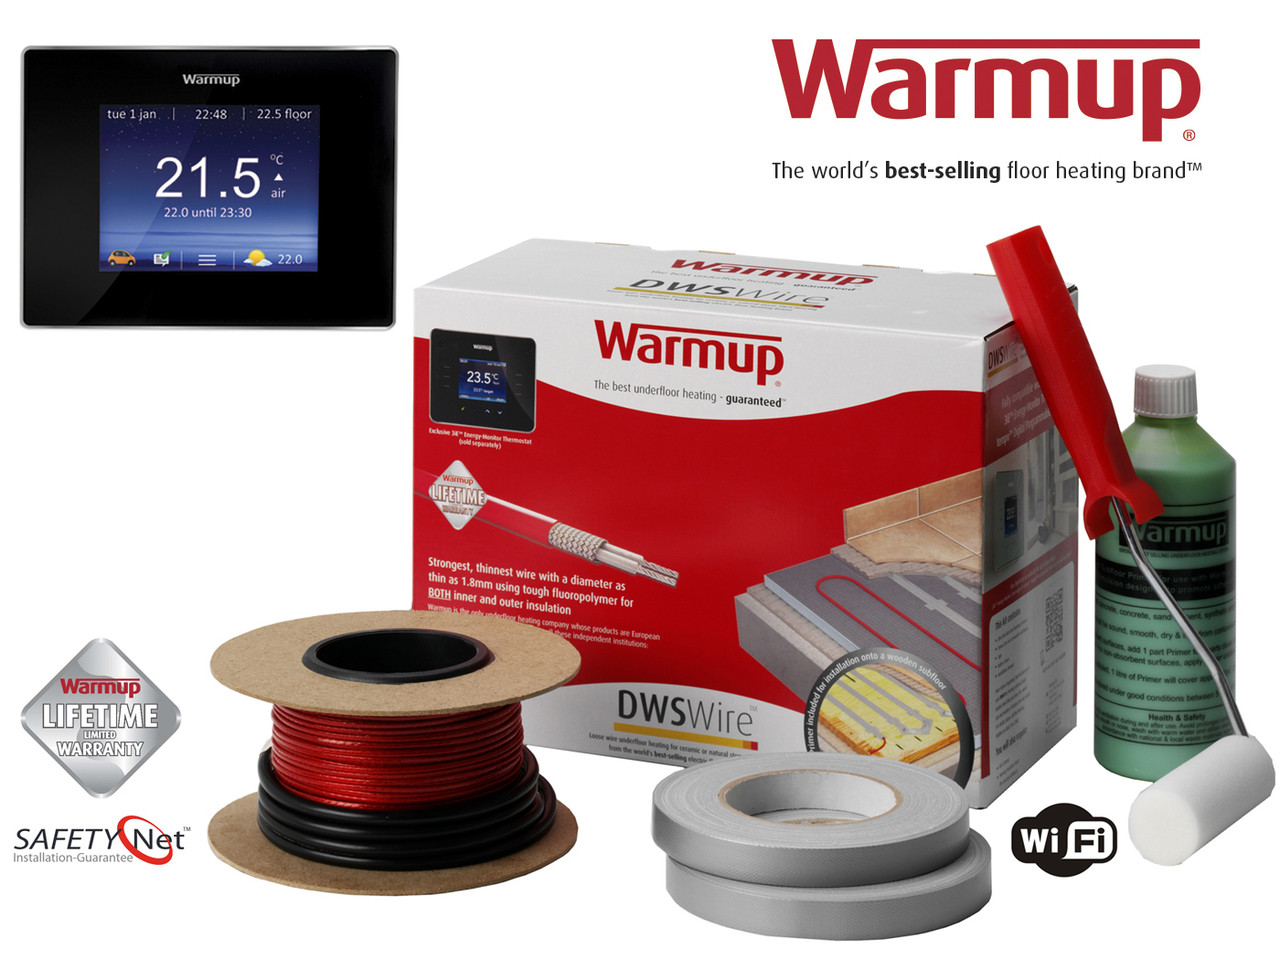 Warmup underfloor heating loose wire dws kits 190 204m2 warmstar image 1 asfbconference2016 Gallery